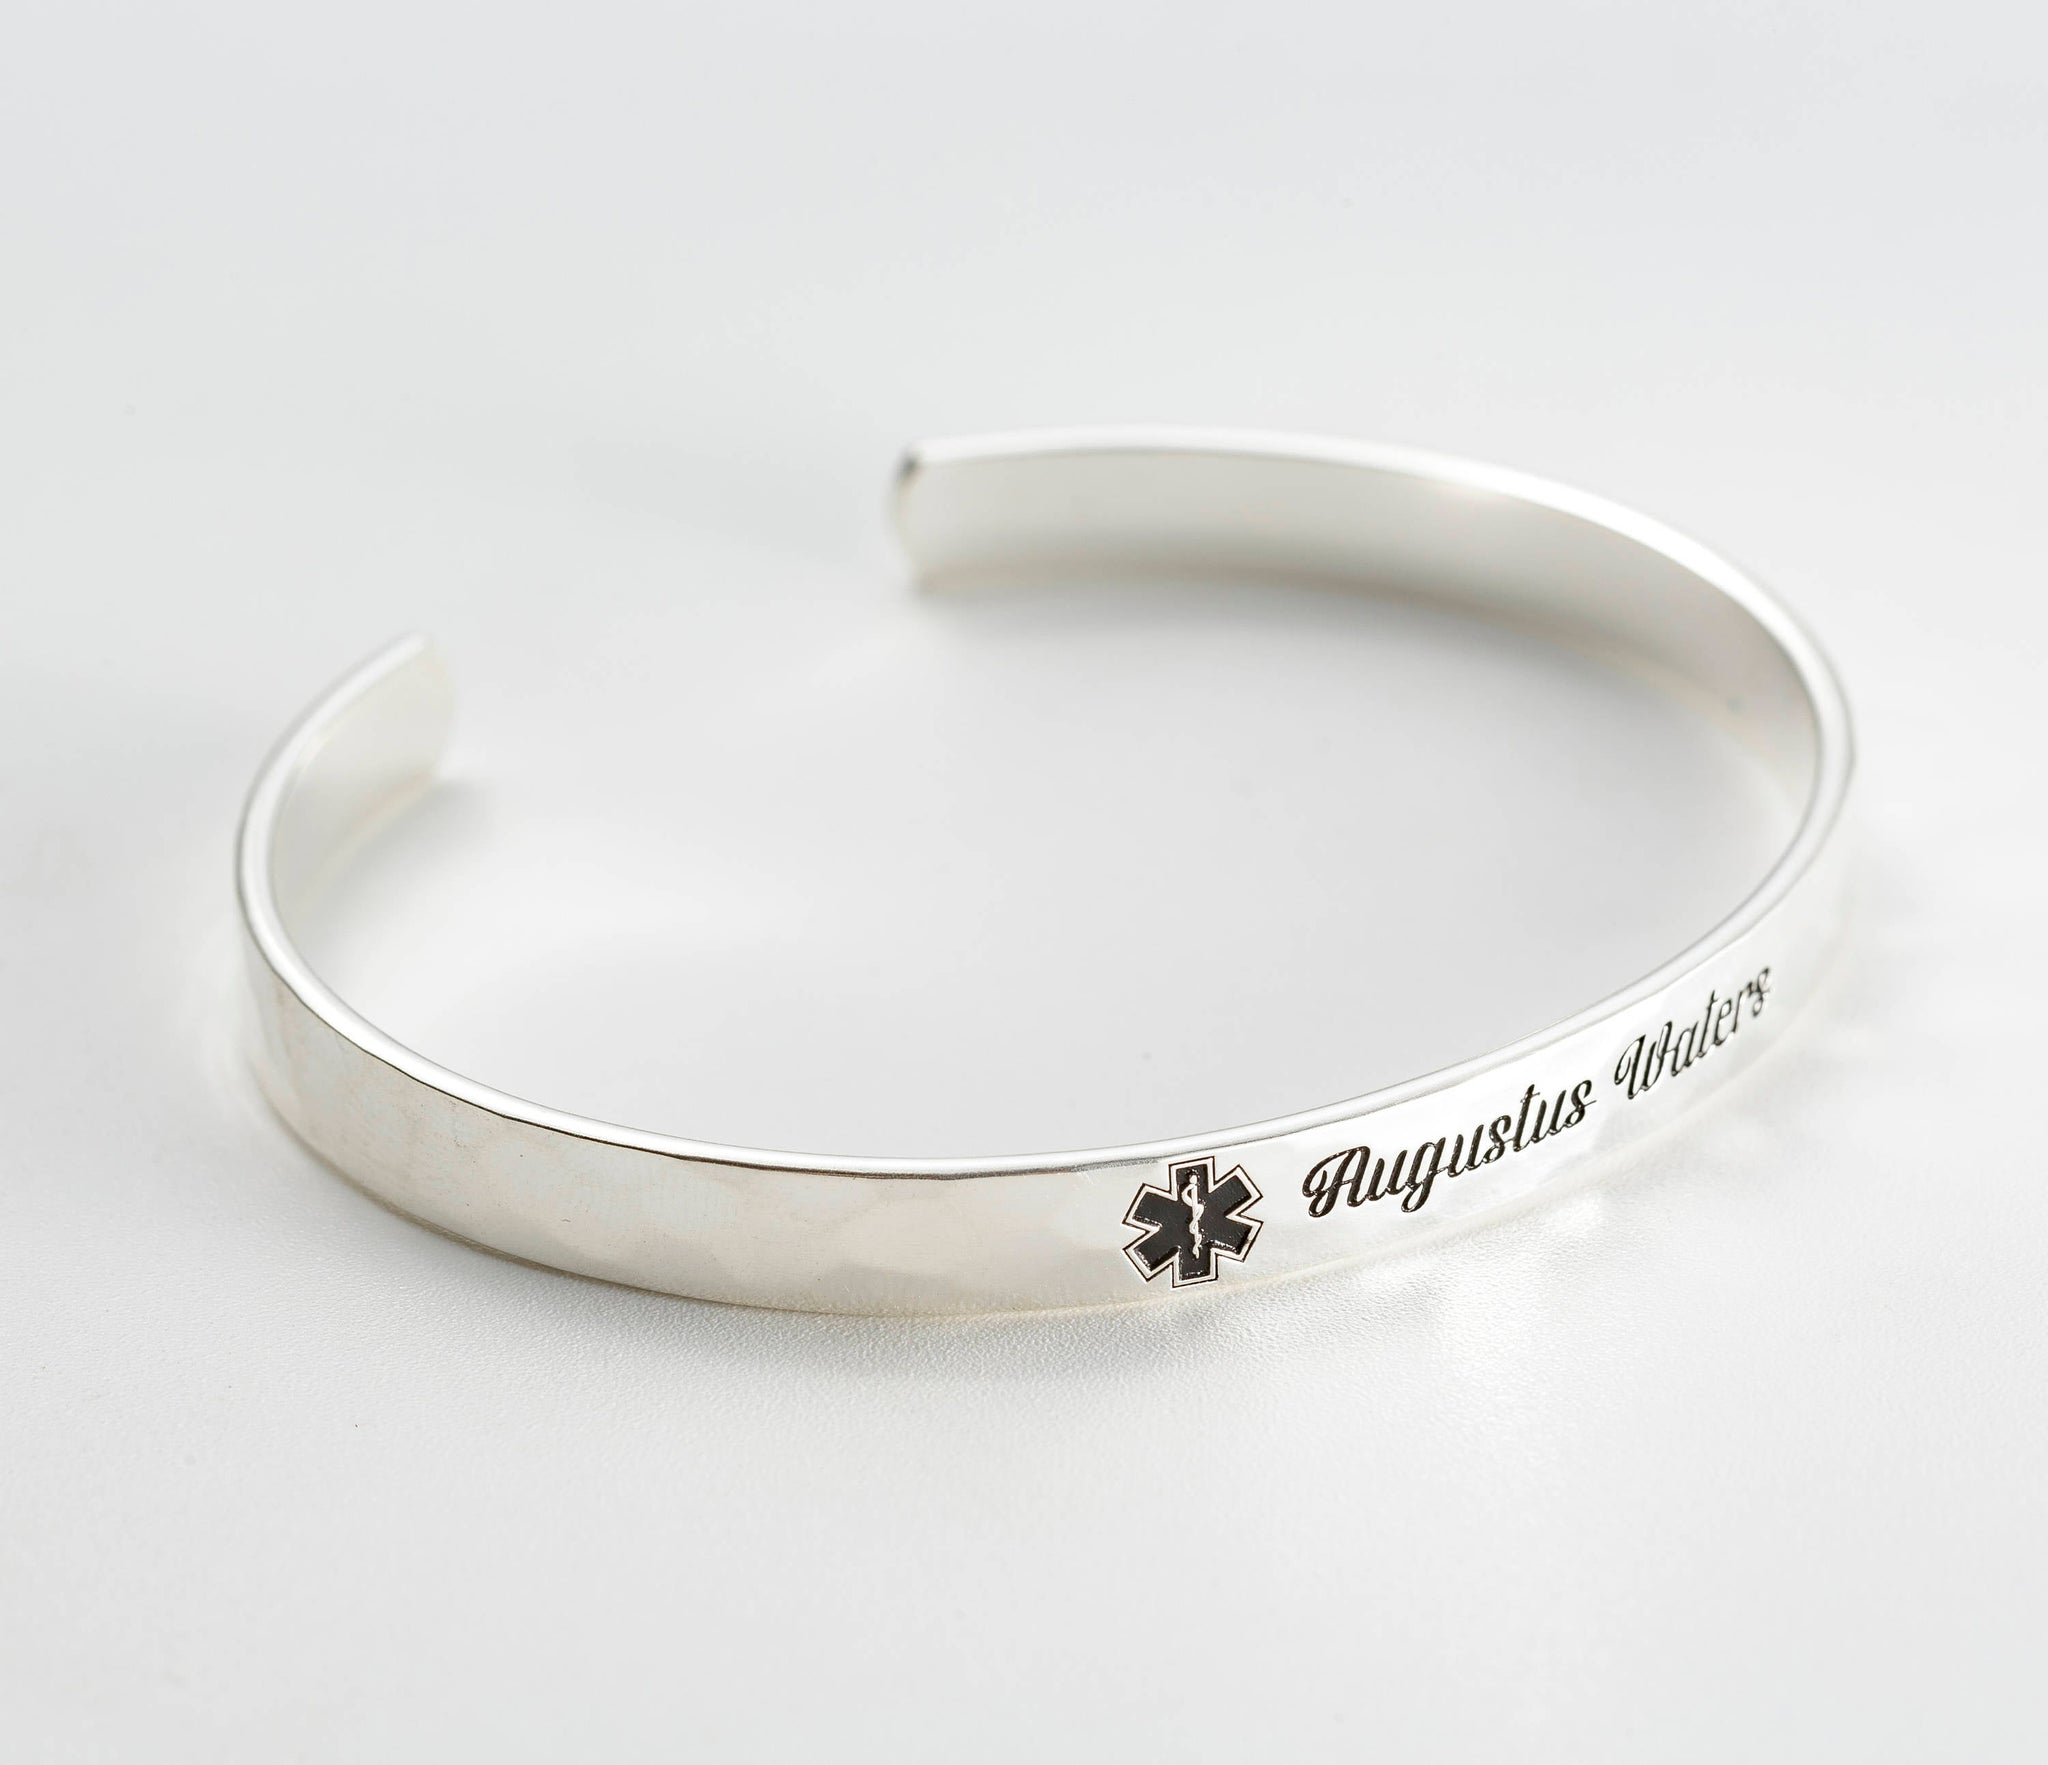 Medical Alert Cuff Bracelet with Hammered Finish